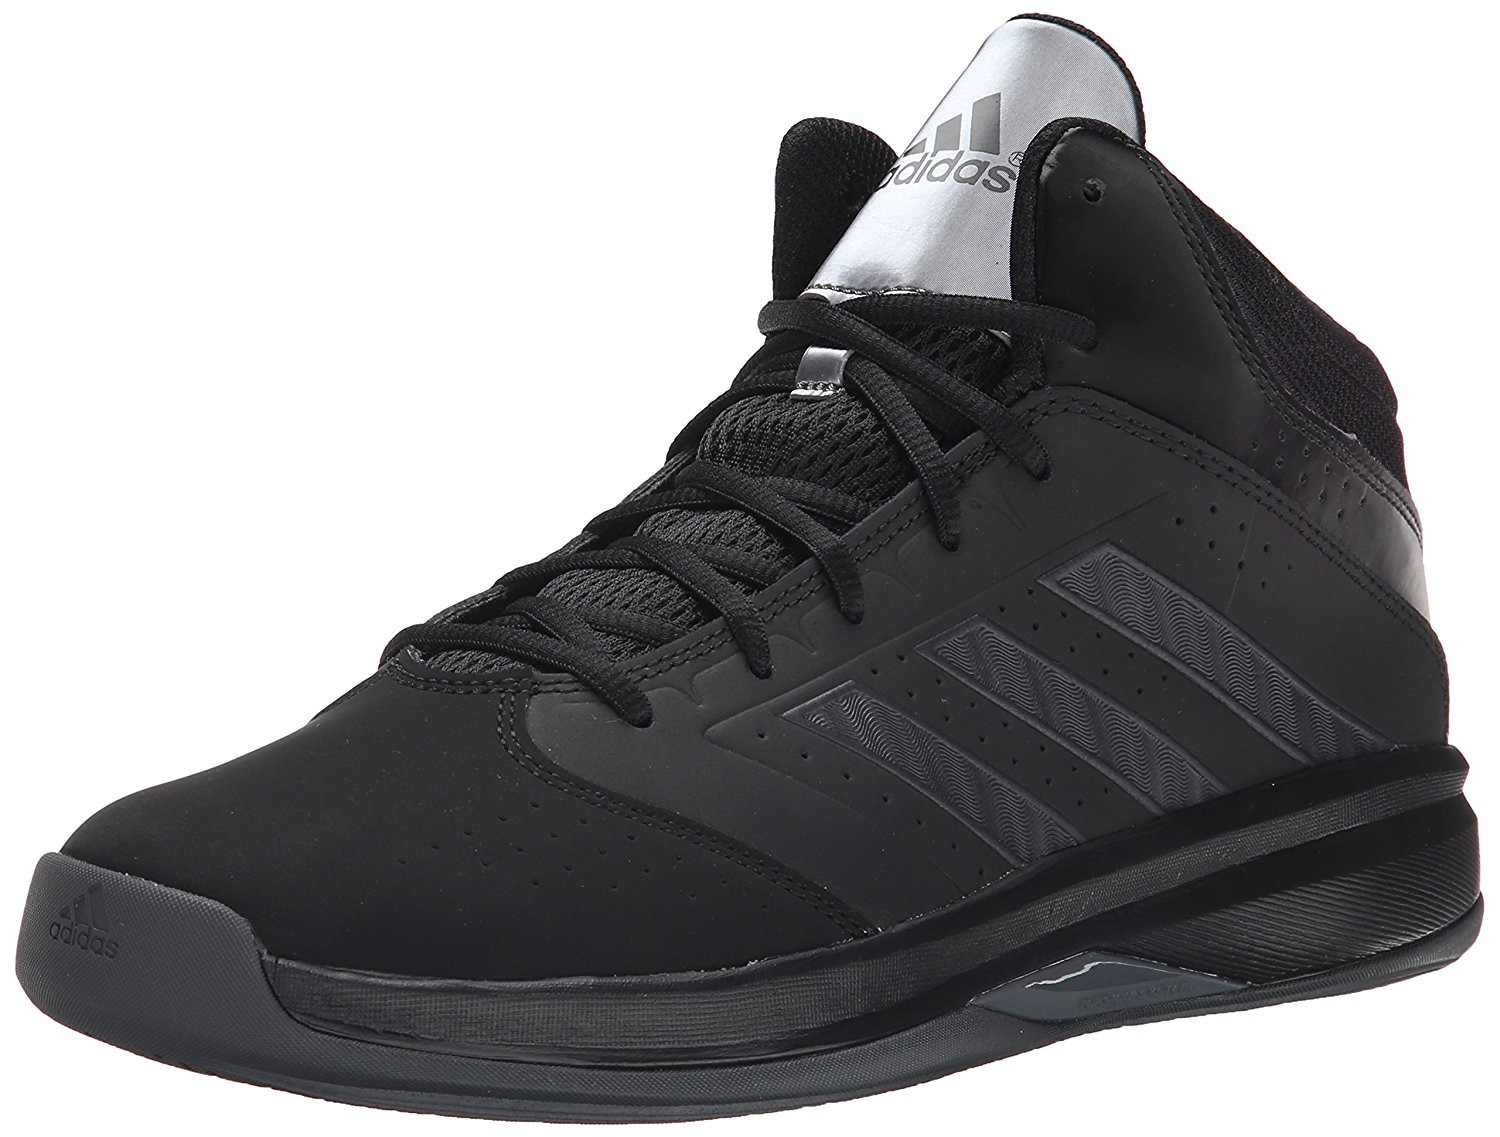 Adidas Isolation 2 All Black